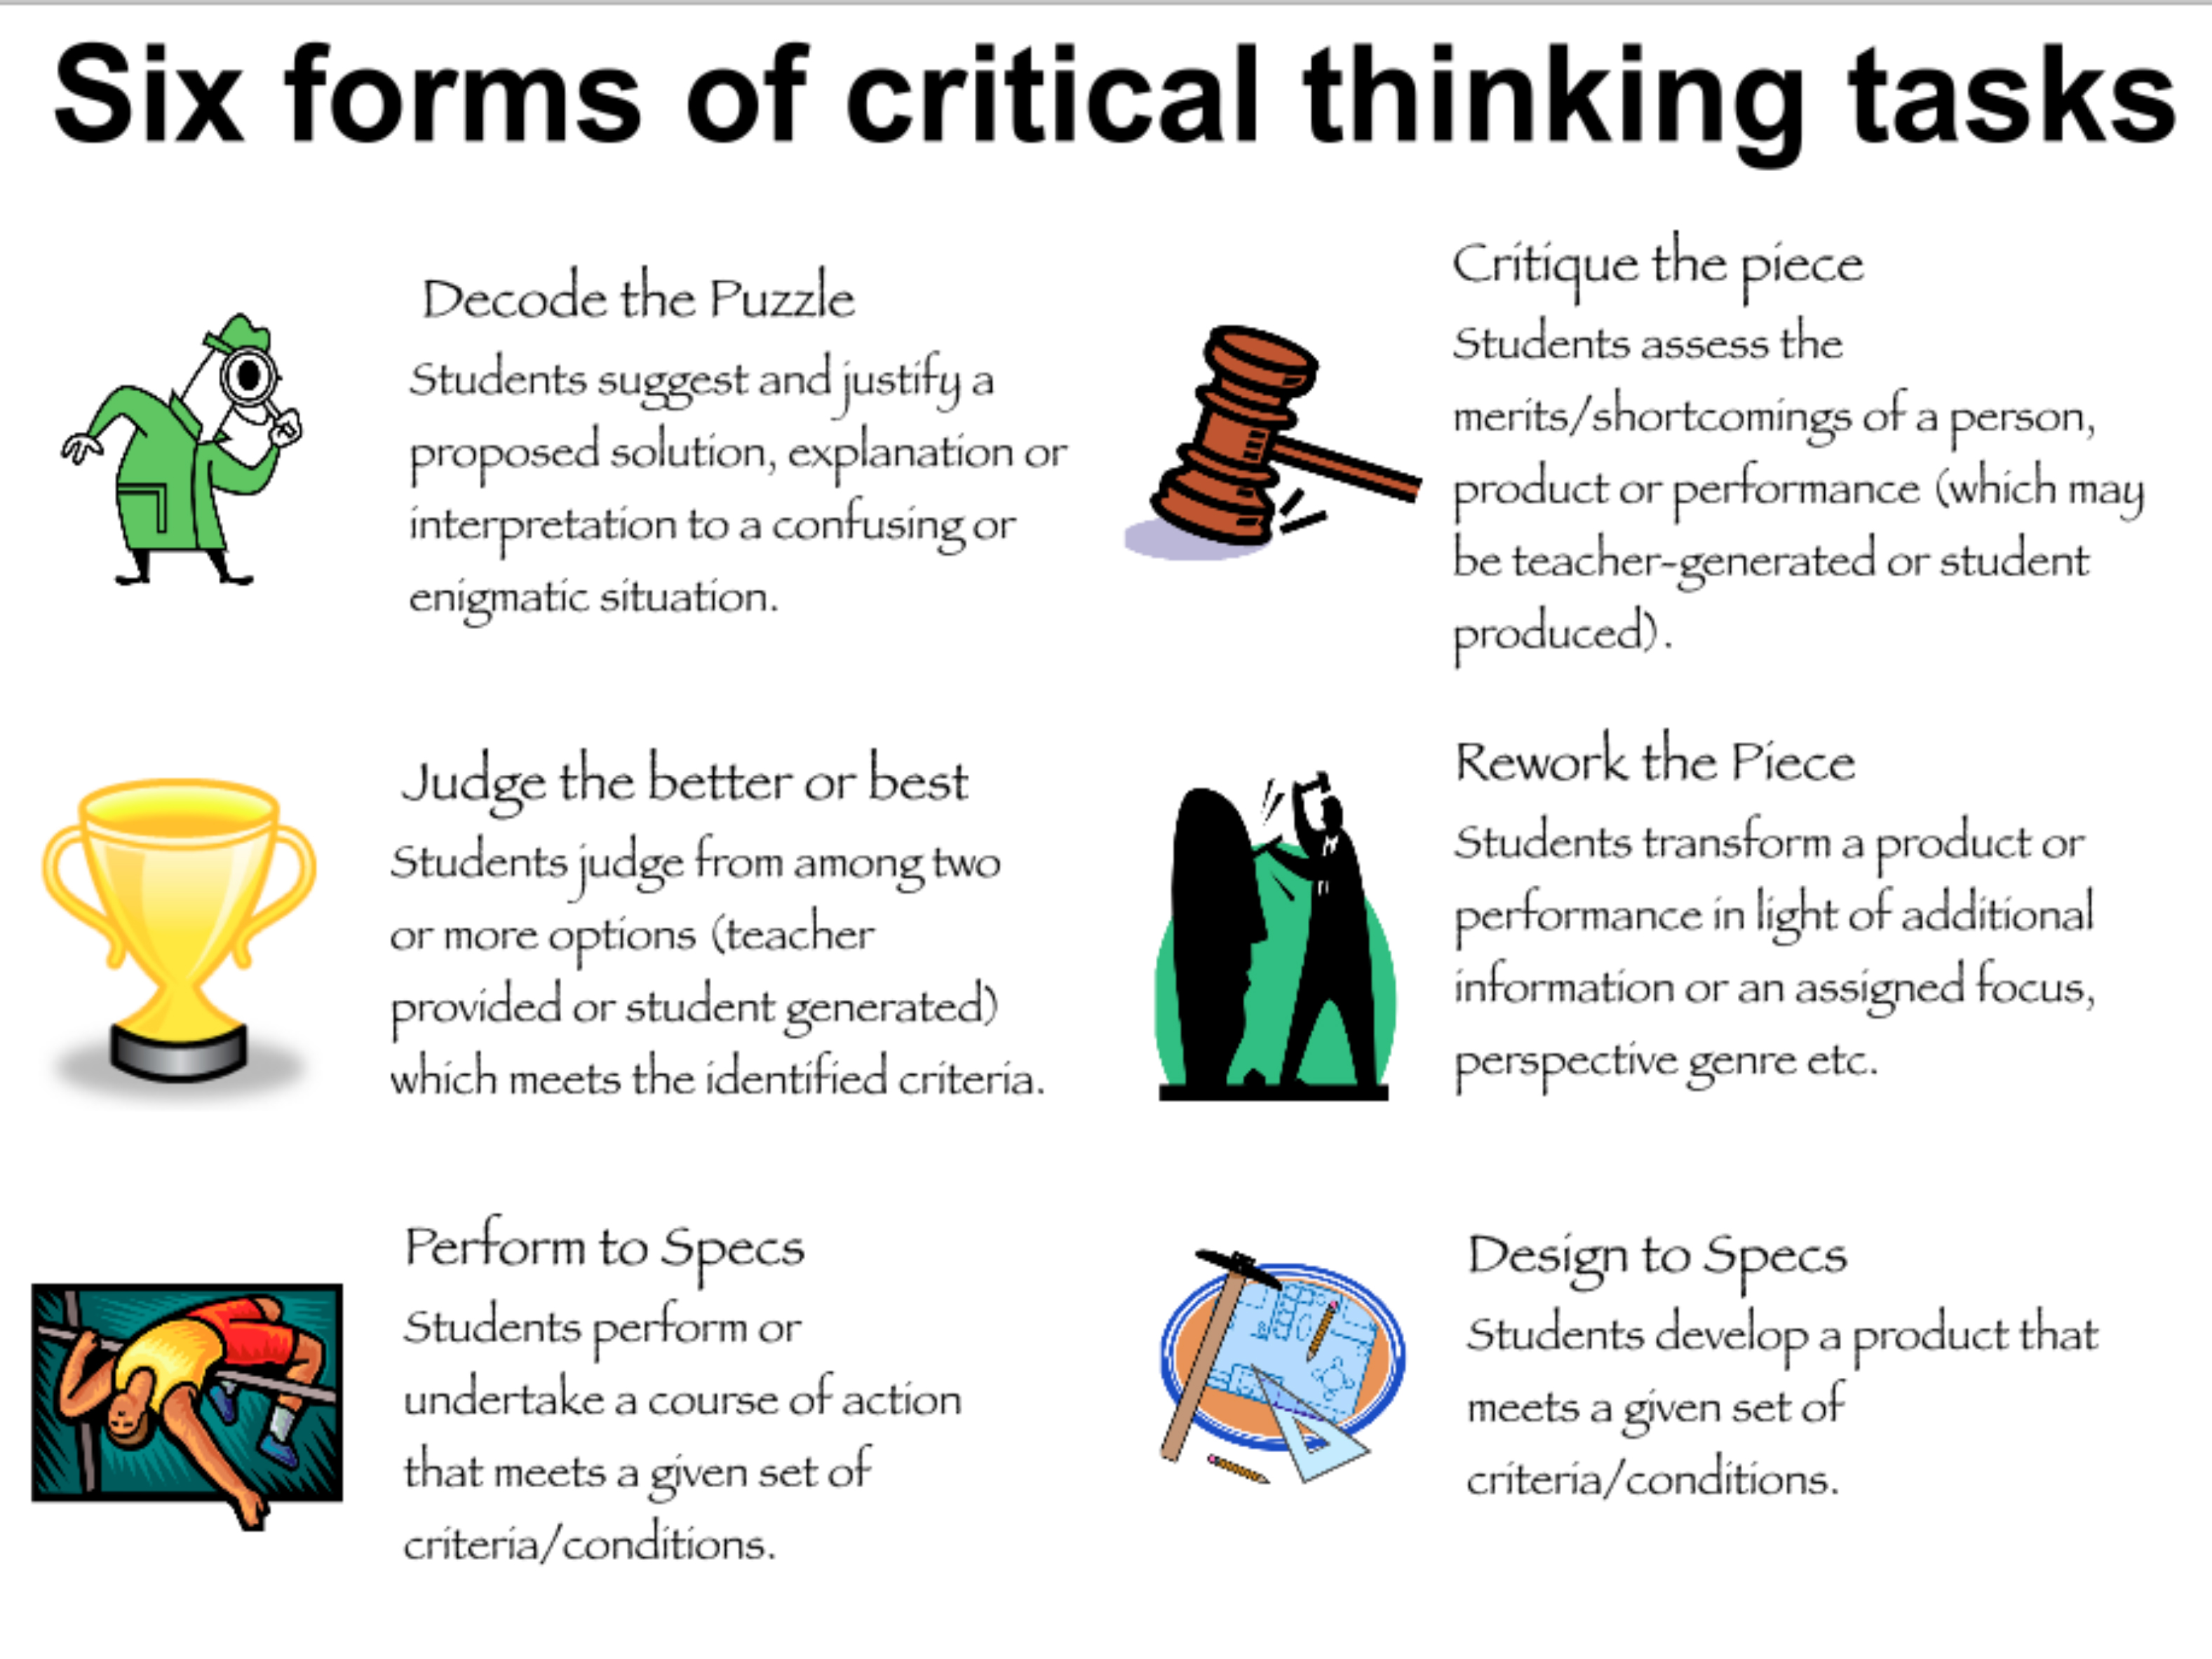 critical thinking garfield gini newman